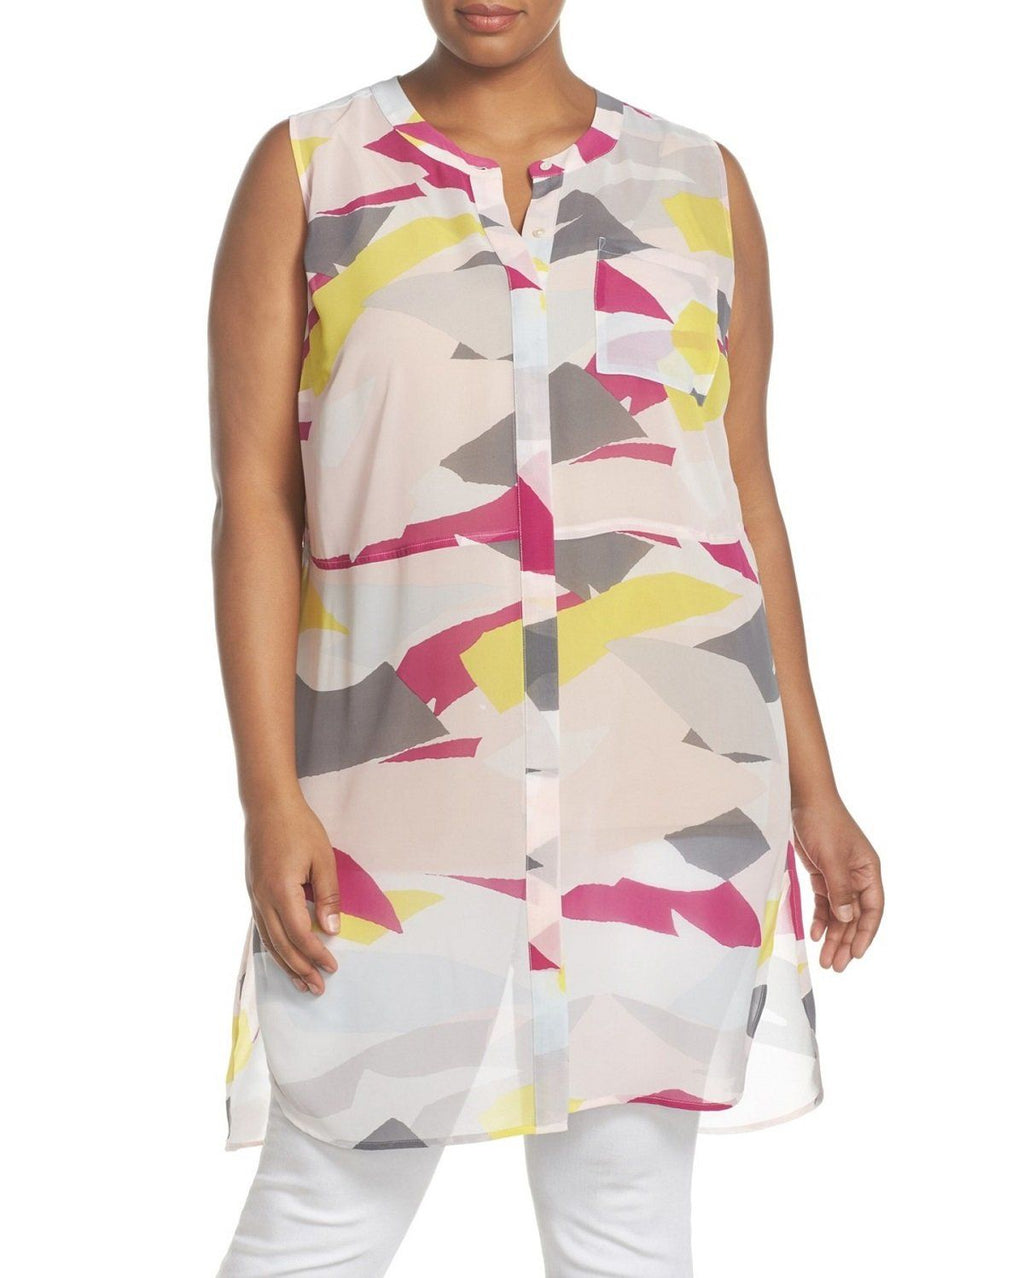 TWO By Vince Camuto Abstract Cutouts Print Chiffon Sleeveless Tunic